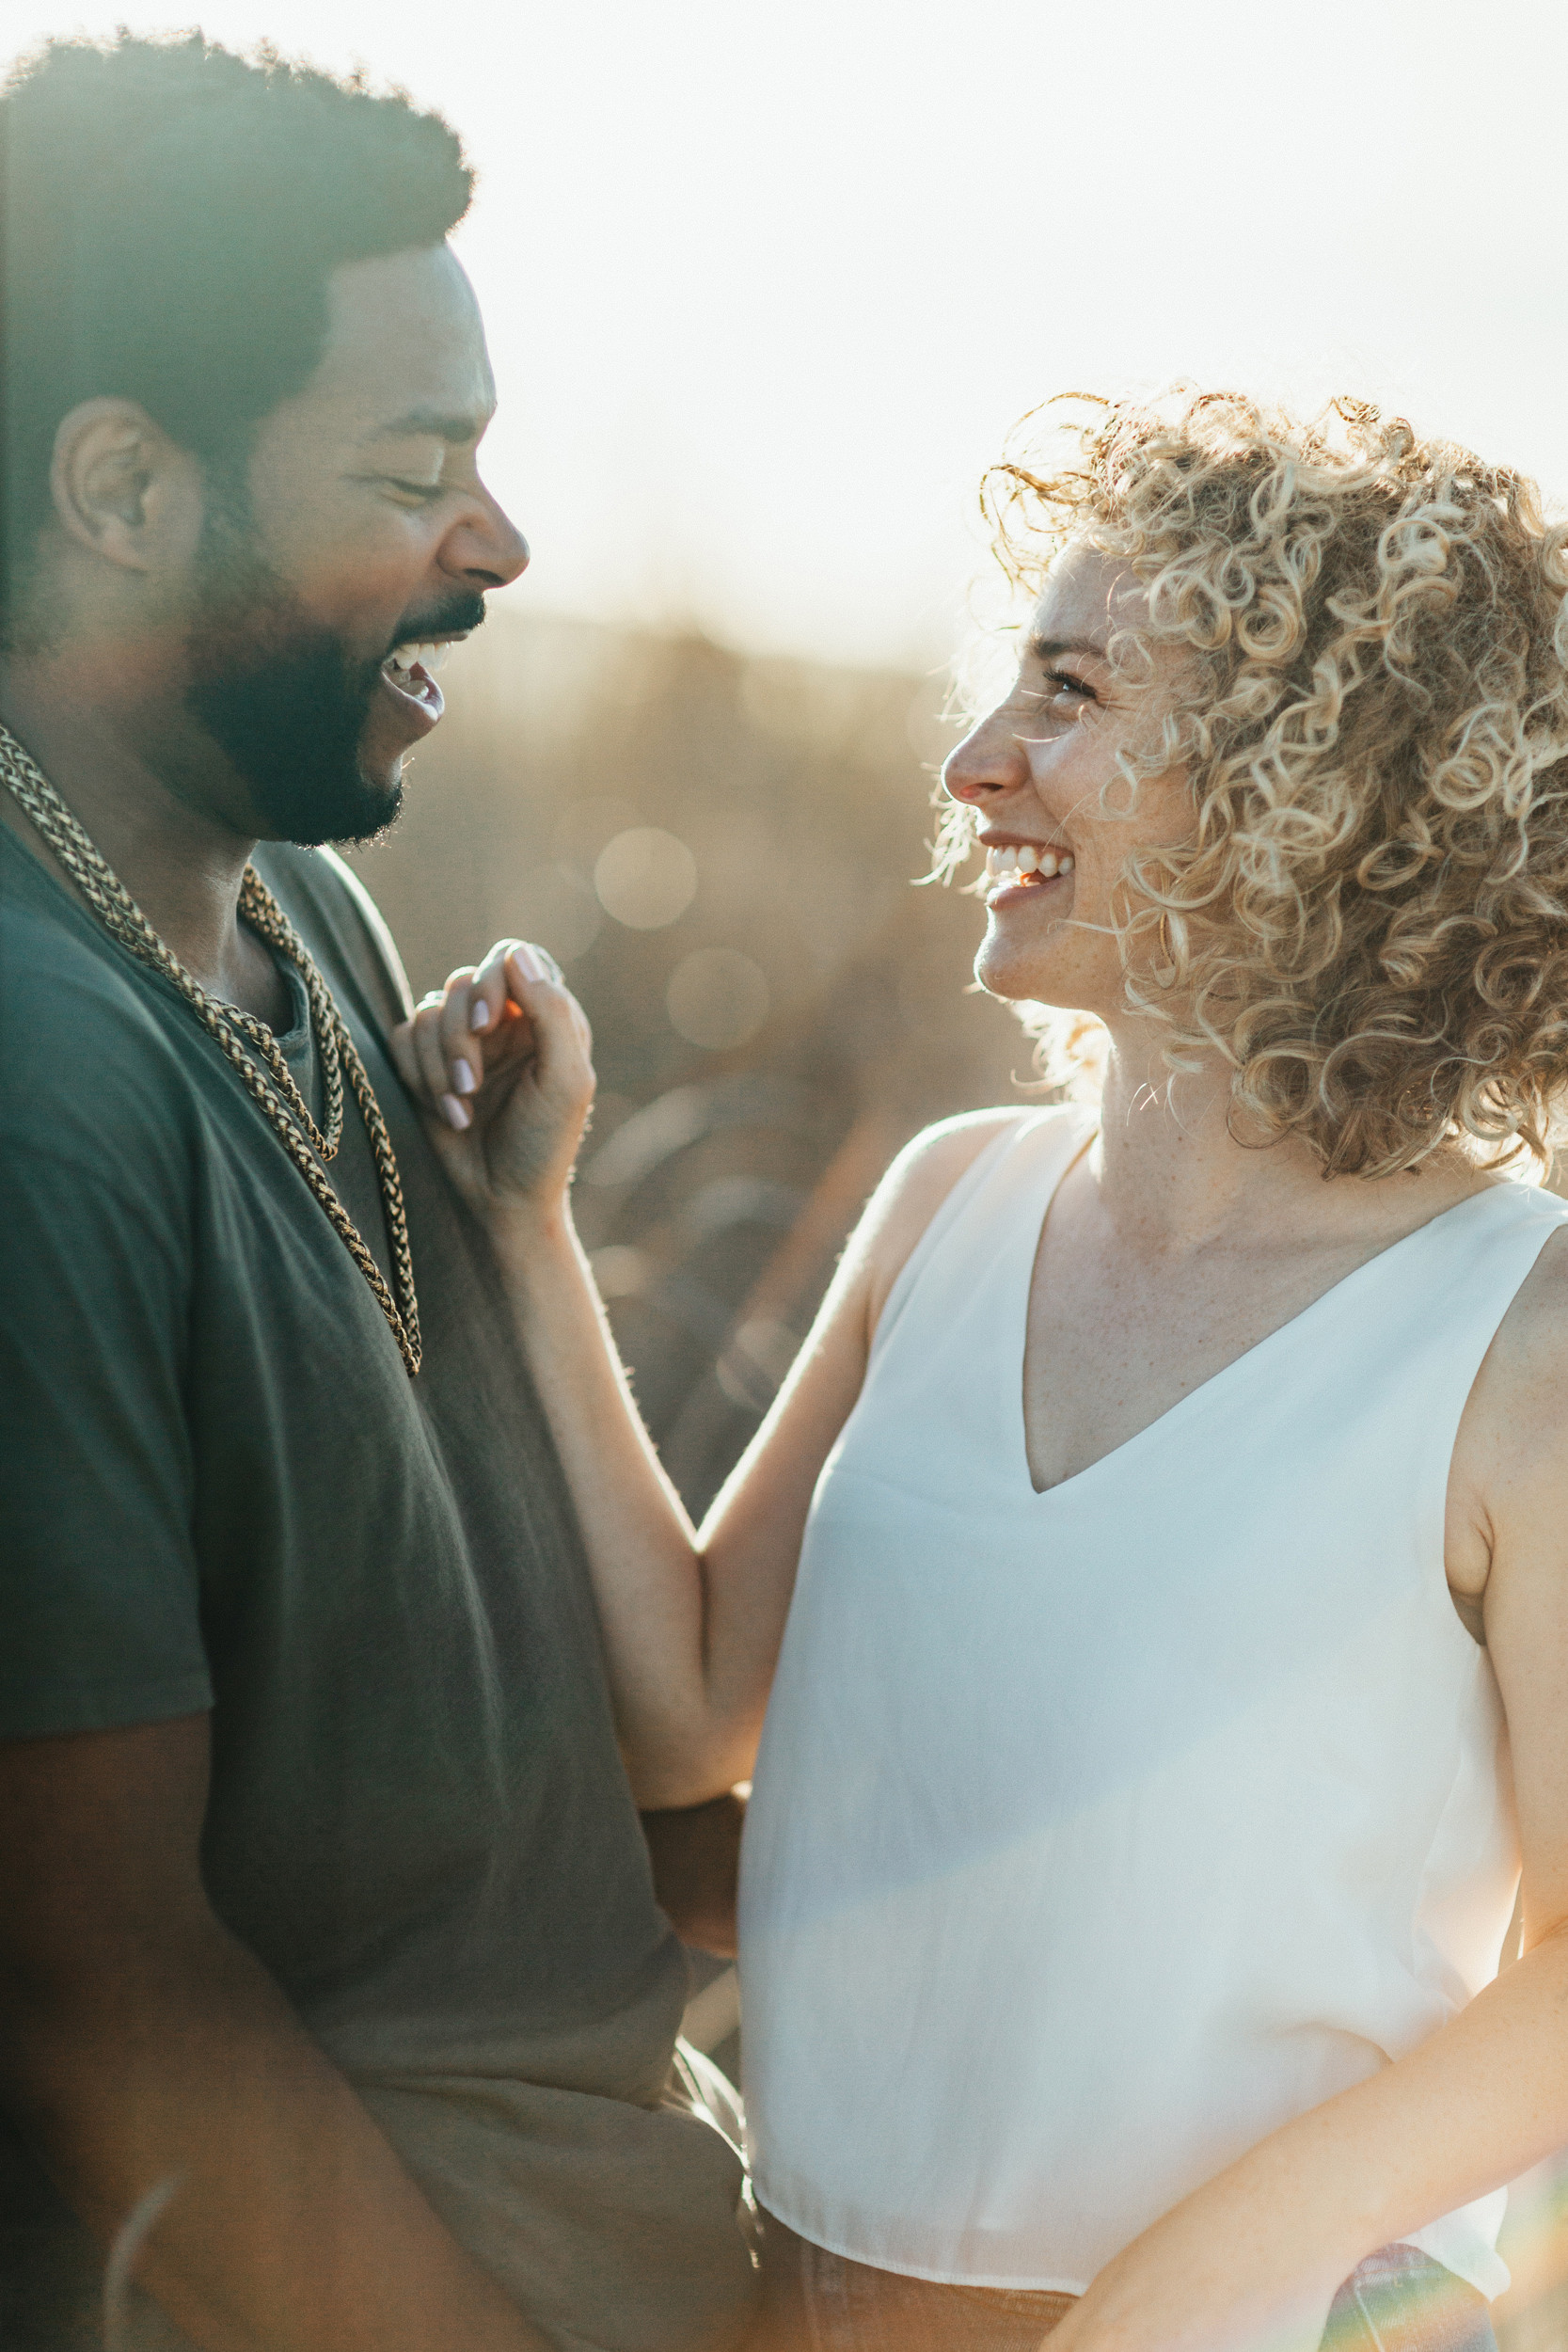 girl laughing with guy engagement photos